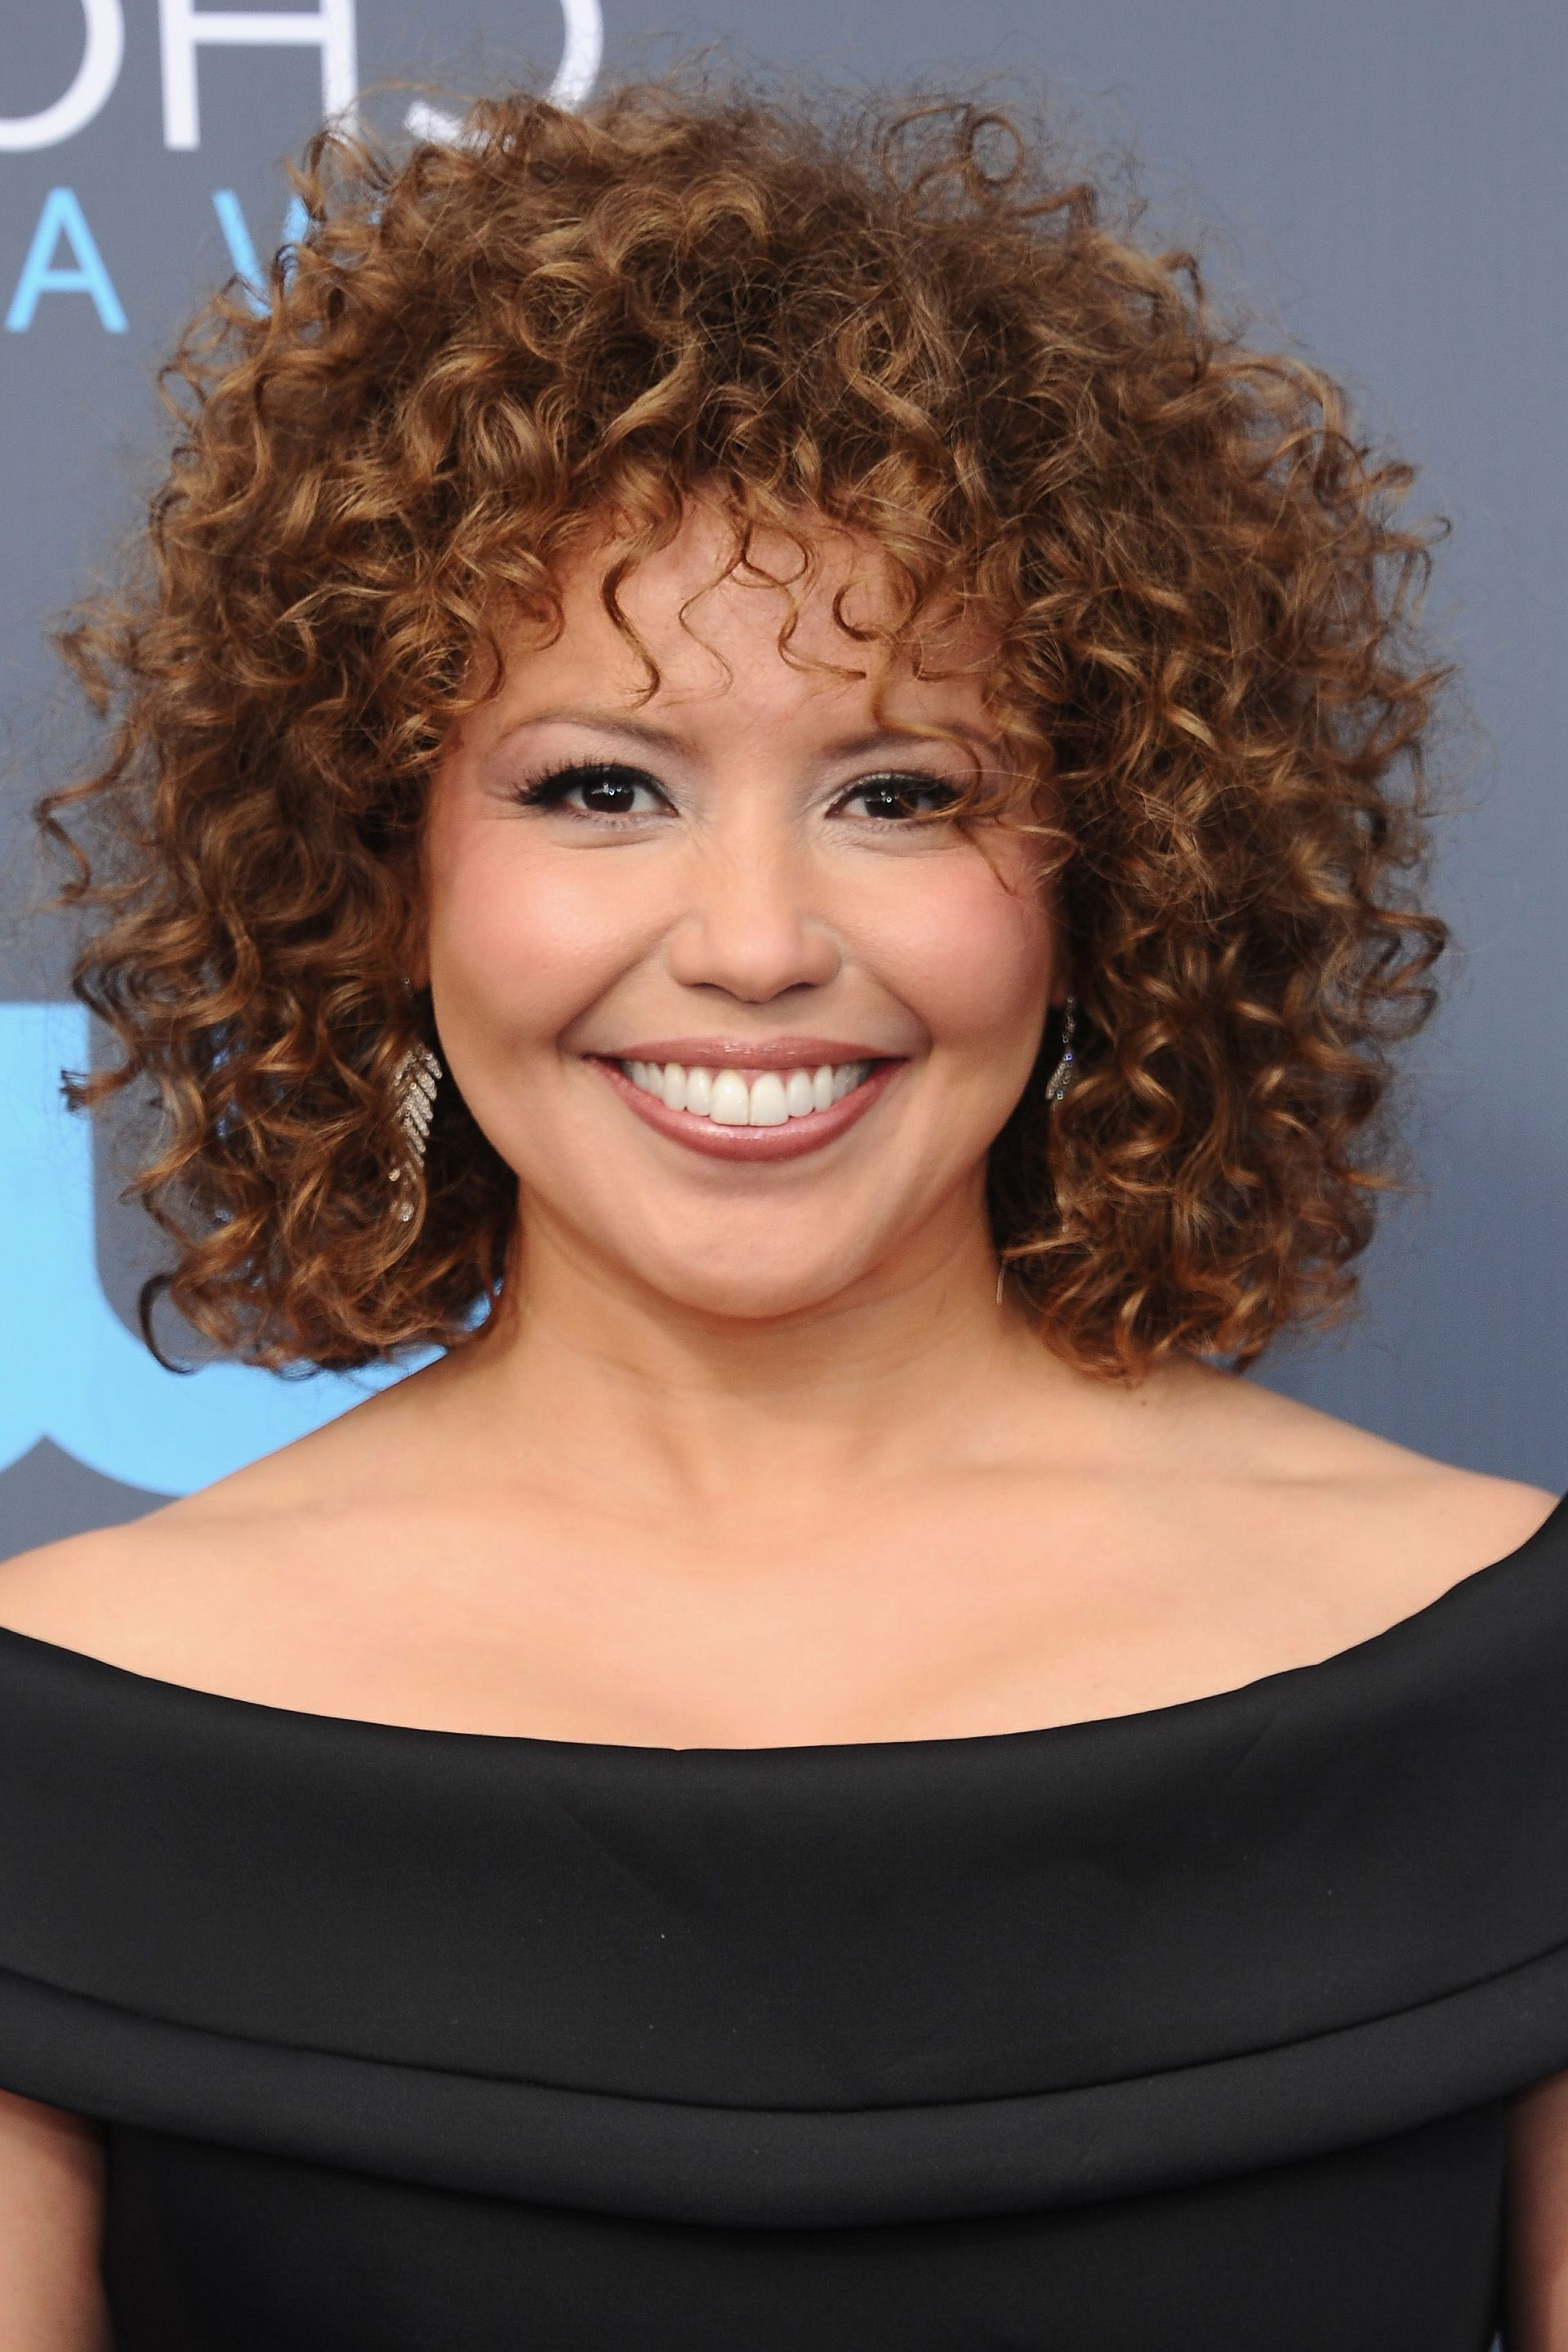 20 Celebrity Short Curly Hair Ideas – Short Haircuts And Hairstyles With Regard To Curly Hair Short Hairstyles (View 14 of 25)